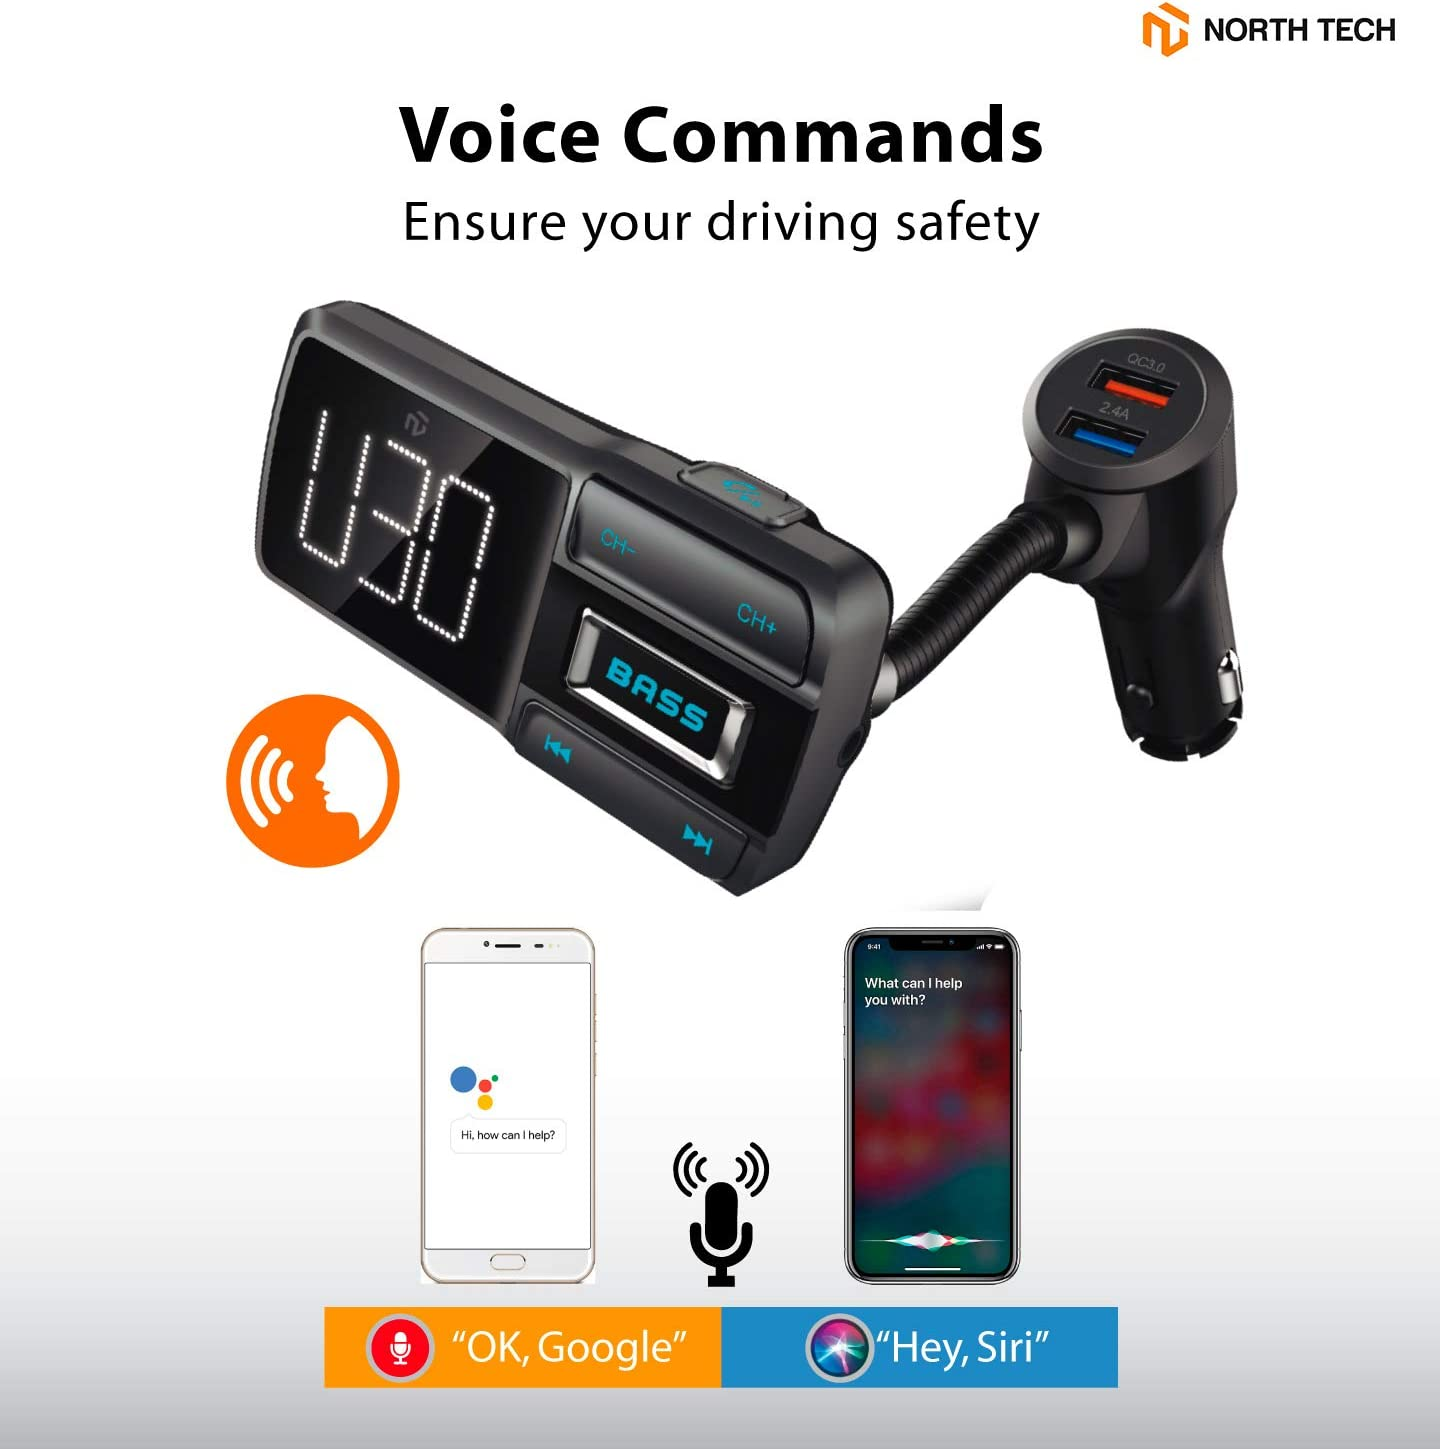 Bass Booster V5.0 Bluetooth Radio Adapter Wireless Music Player Car Kit with Hands-Free Calling 5V//2.4A 1A Dual USB Ports Charger TF//SD Card Support Aux NT North-Tech Bluetooth Car FM Transmitter